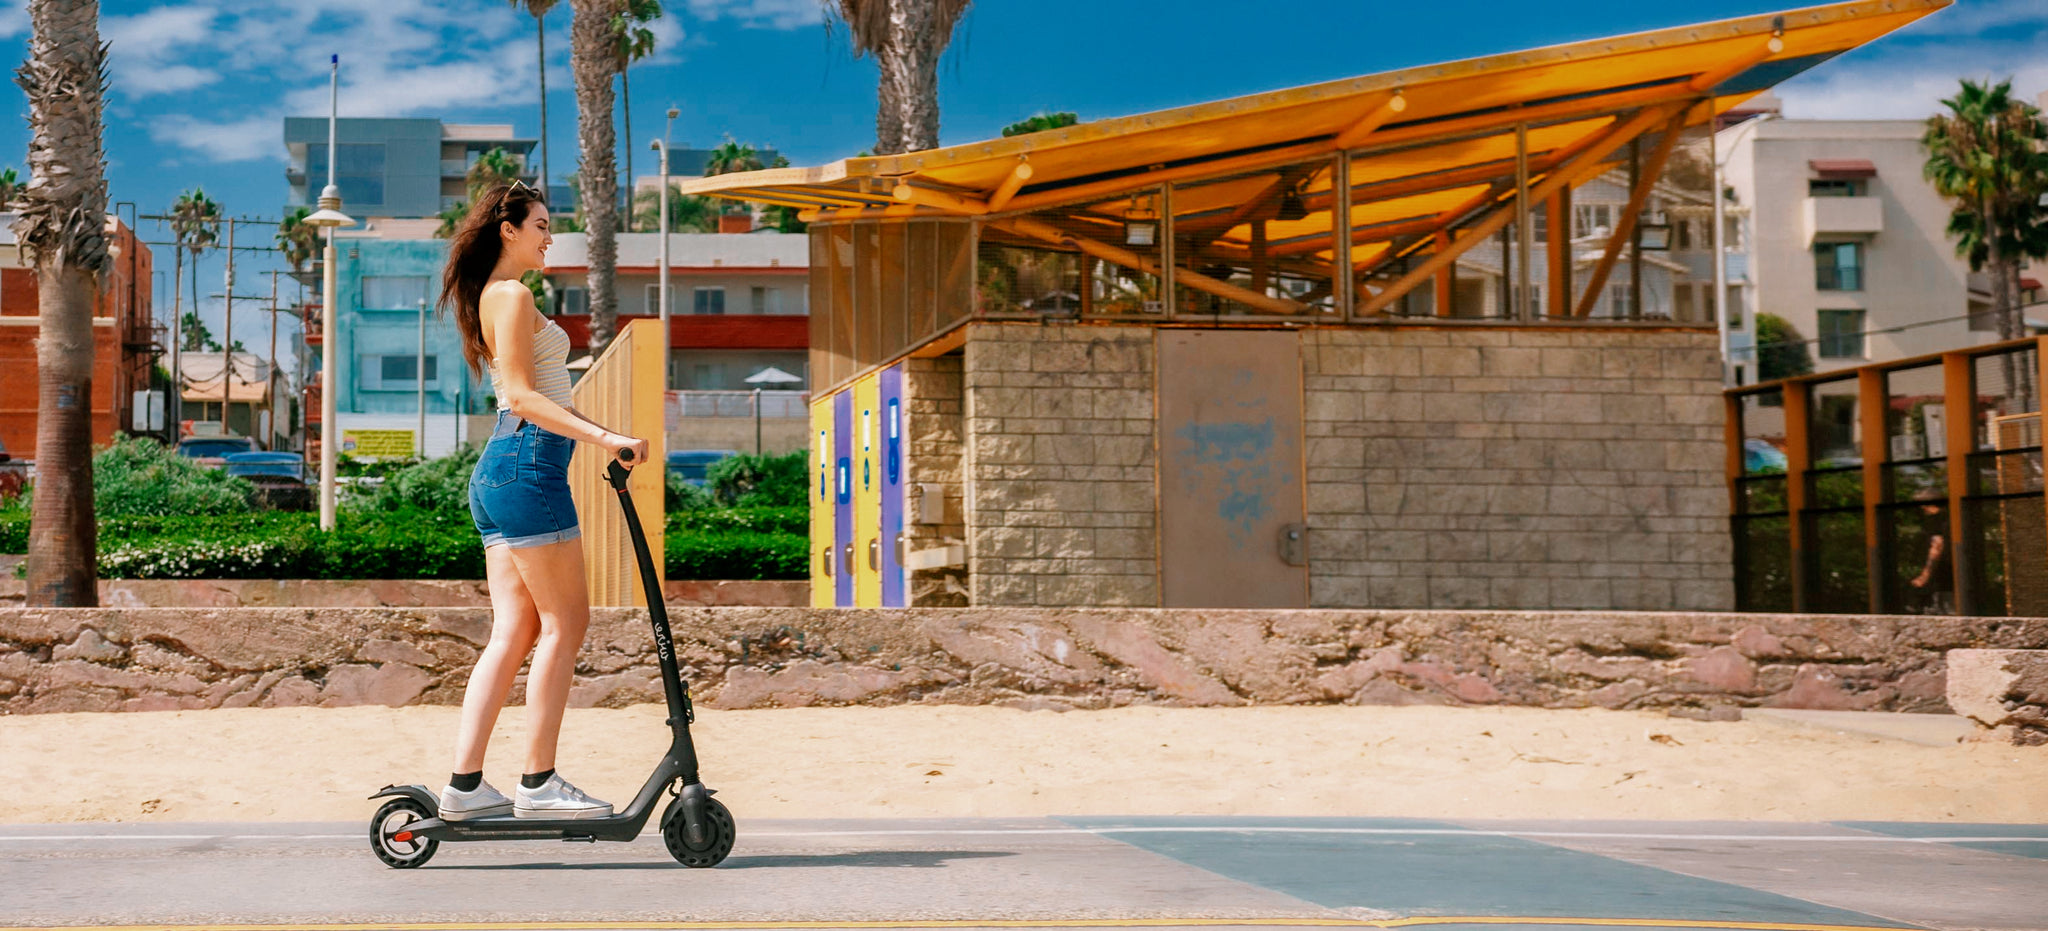 Woman riding Wire Ohm Electric Scooter on Los Angeles Beach boardwalk